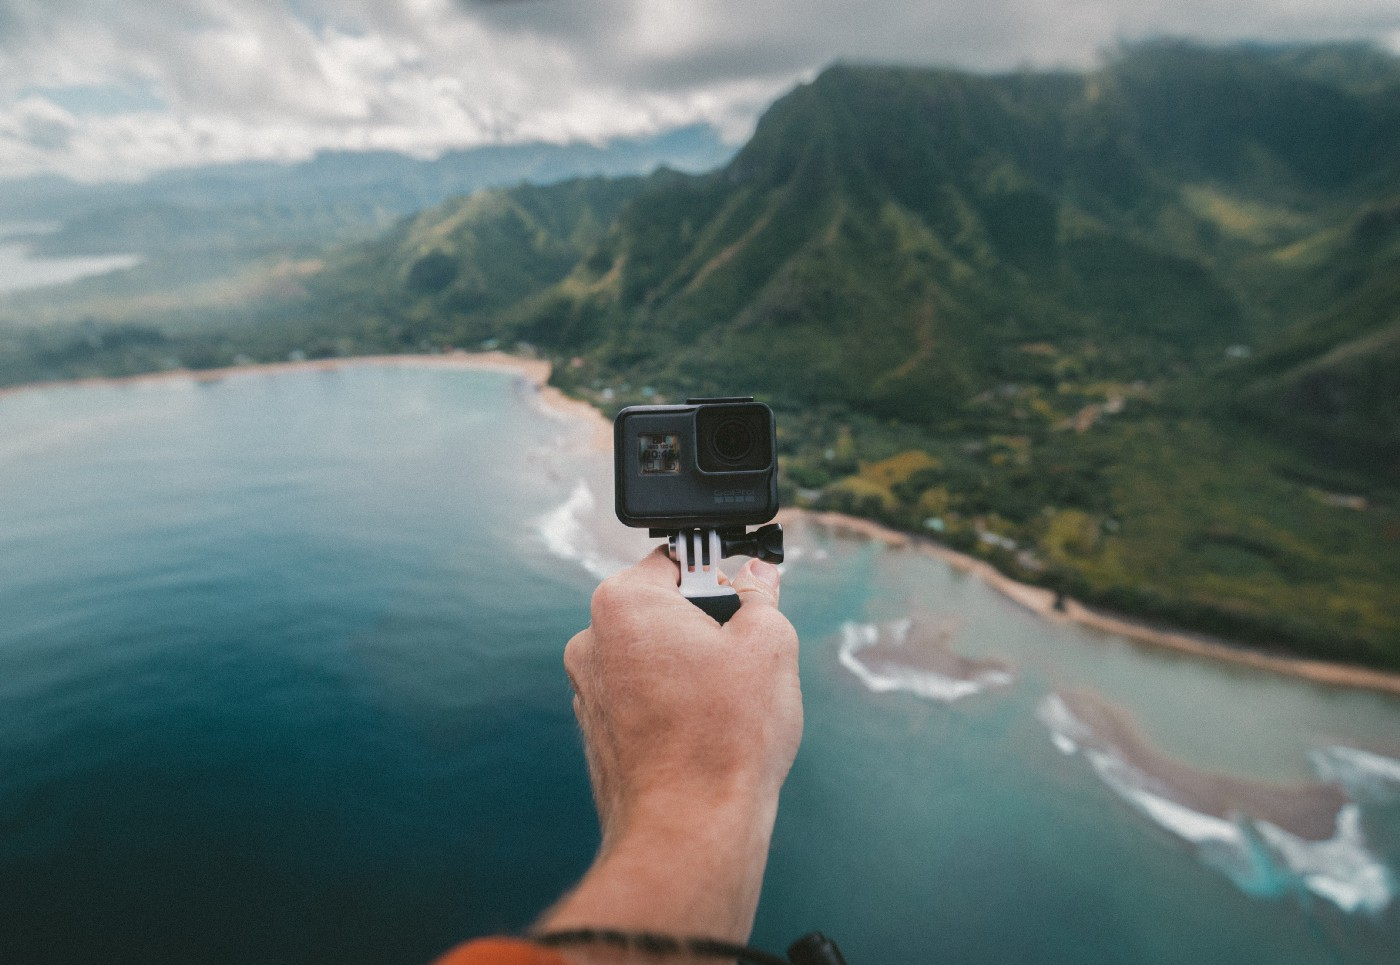 A focus shot of a person holding a GoPro camera with a wide landscape showing the sea and an island.